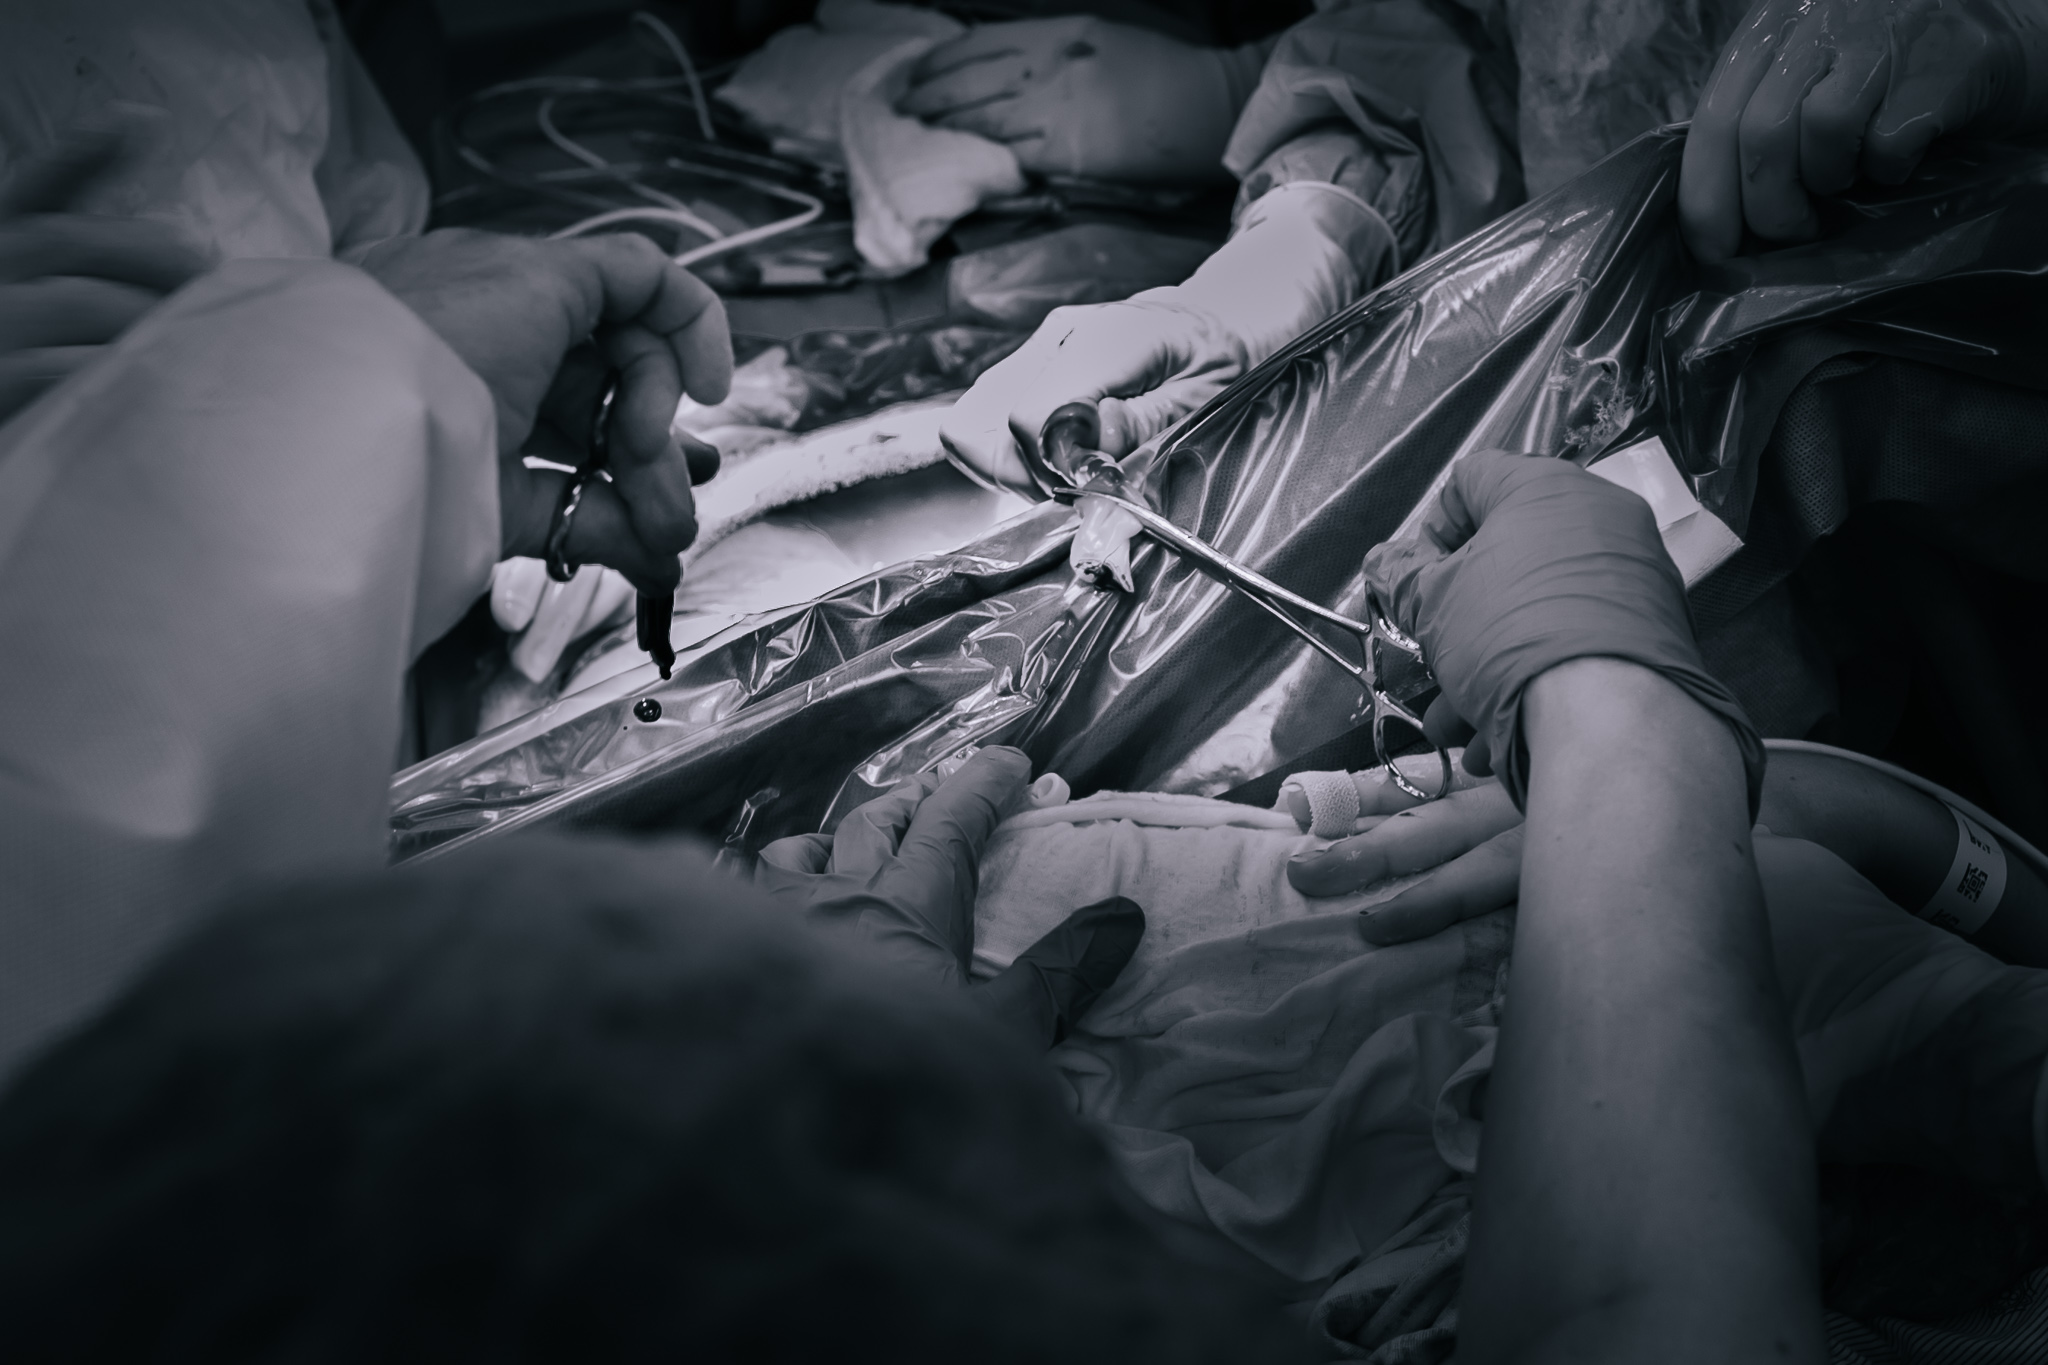 Cutting the umbilical cord in a cesarean section.